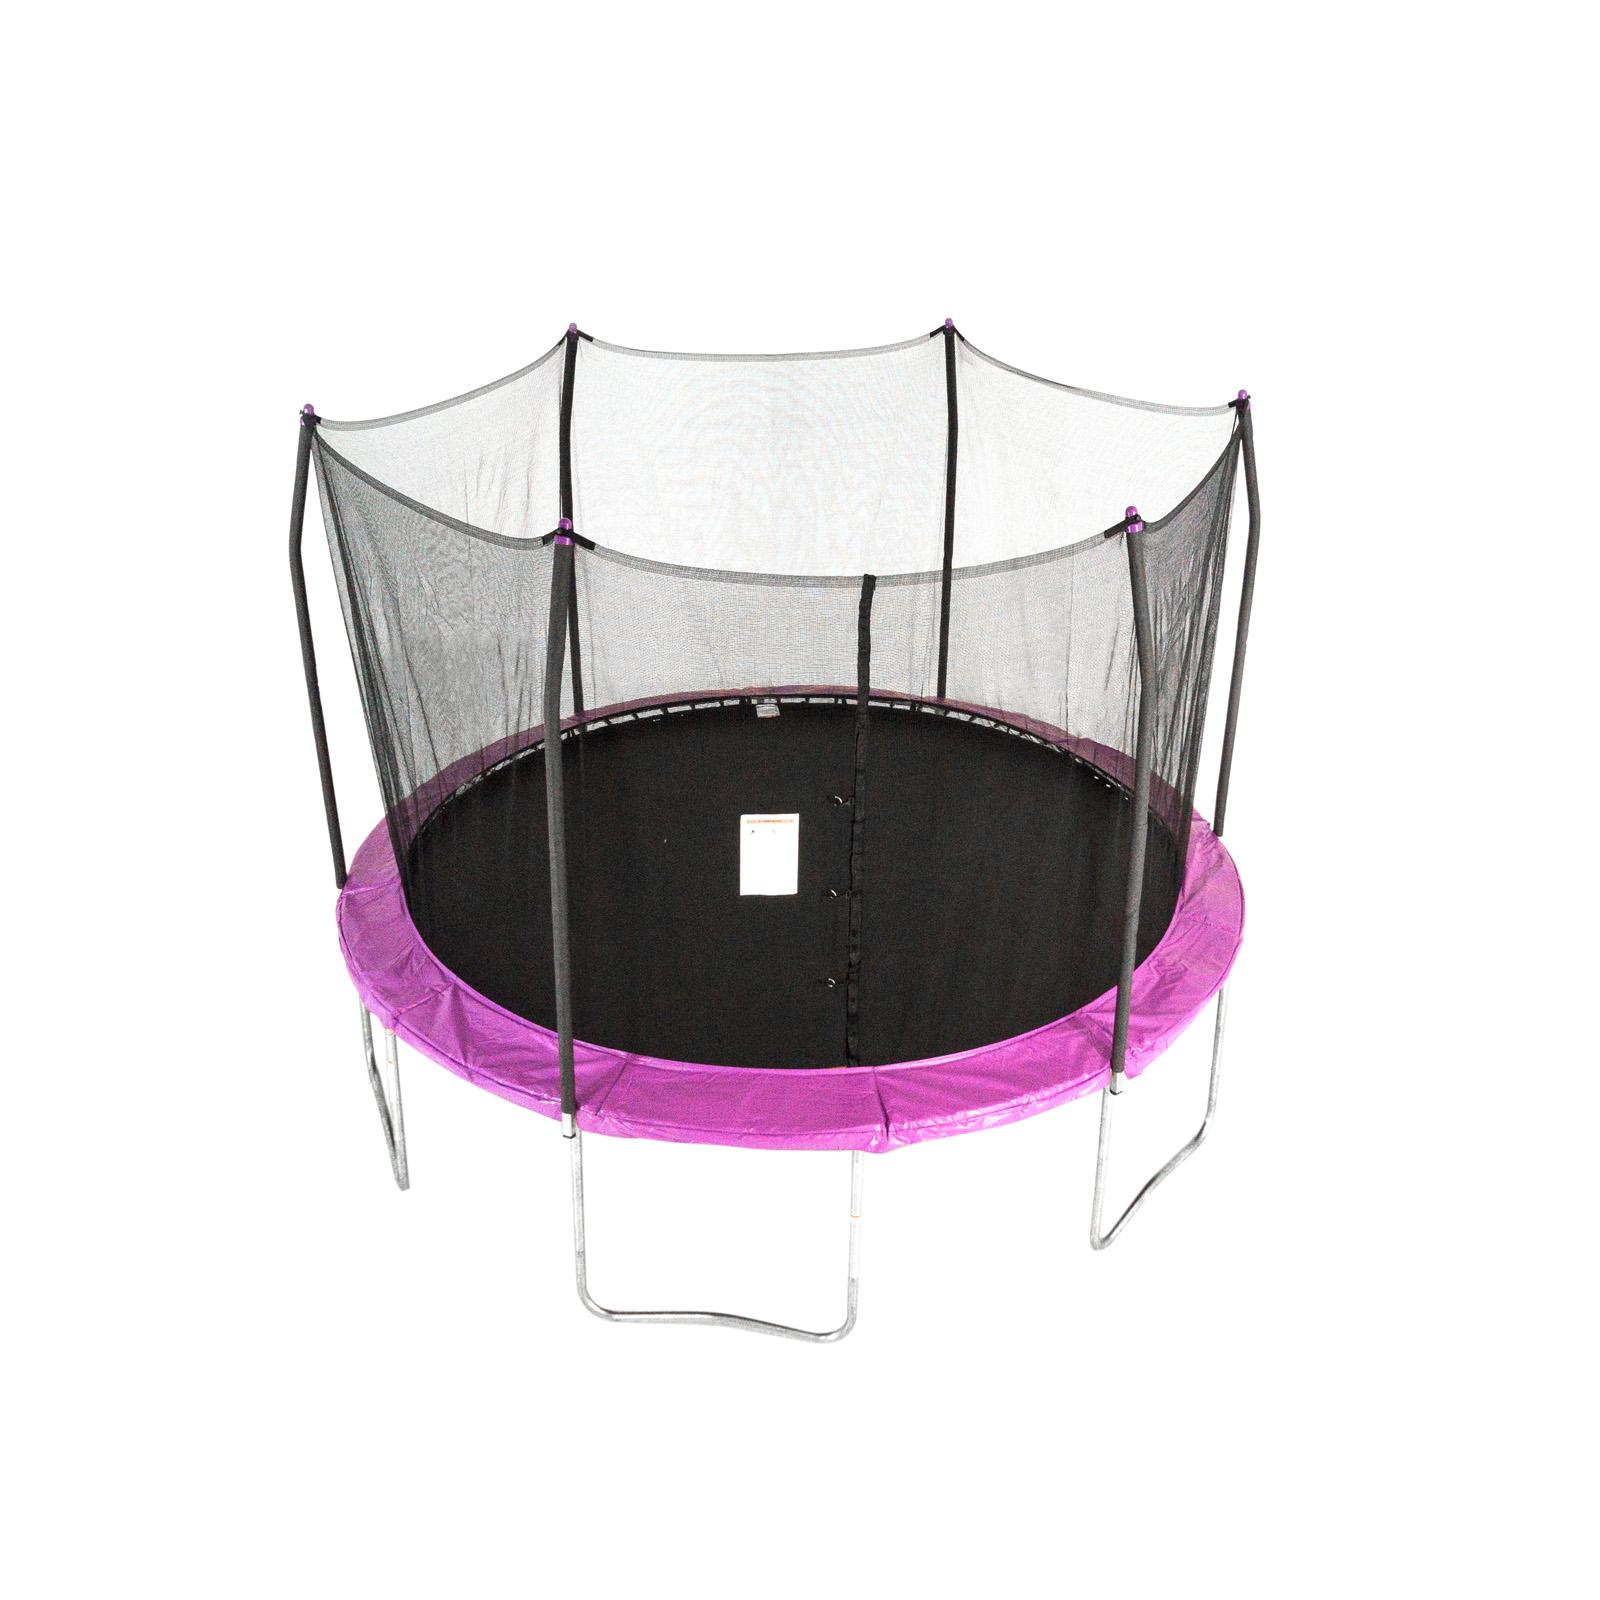 Skywalker 12-ft. Round Trampoline with Enclosure Purple - STEC12P